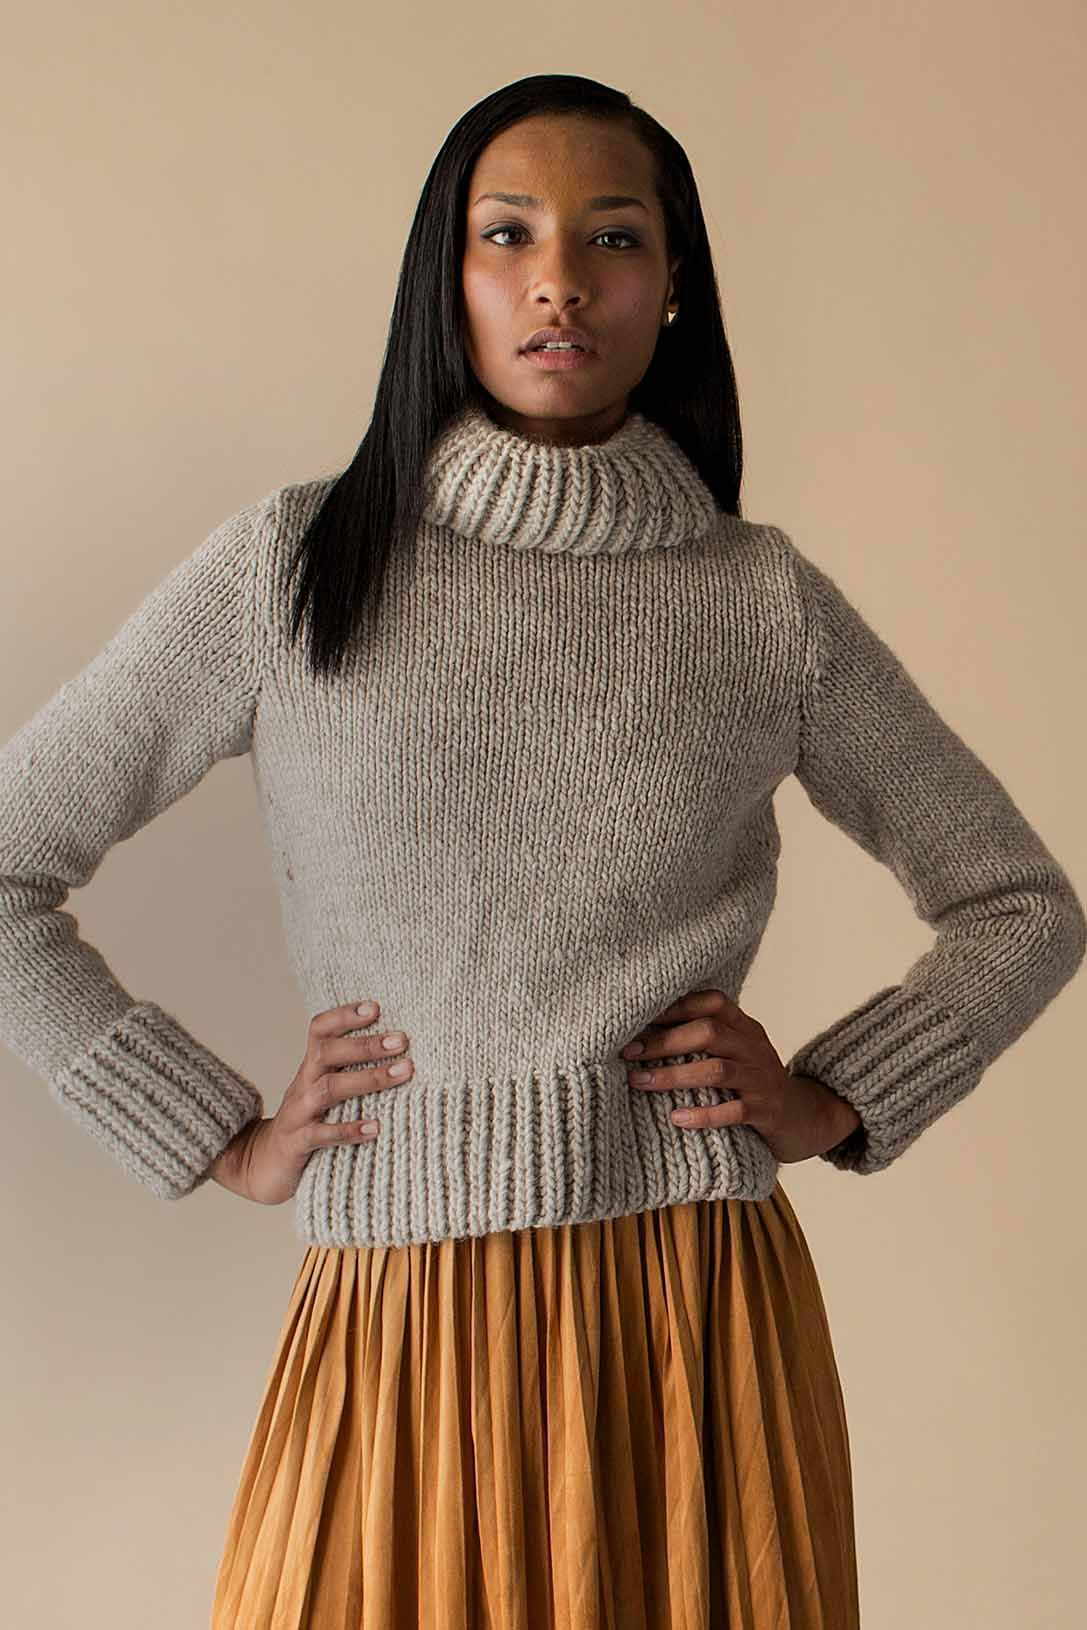 knit.wear Wool Studio Vol III: The Michele Wang Collection | Knit ...